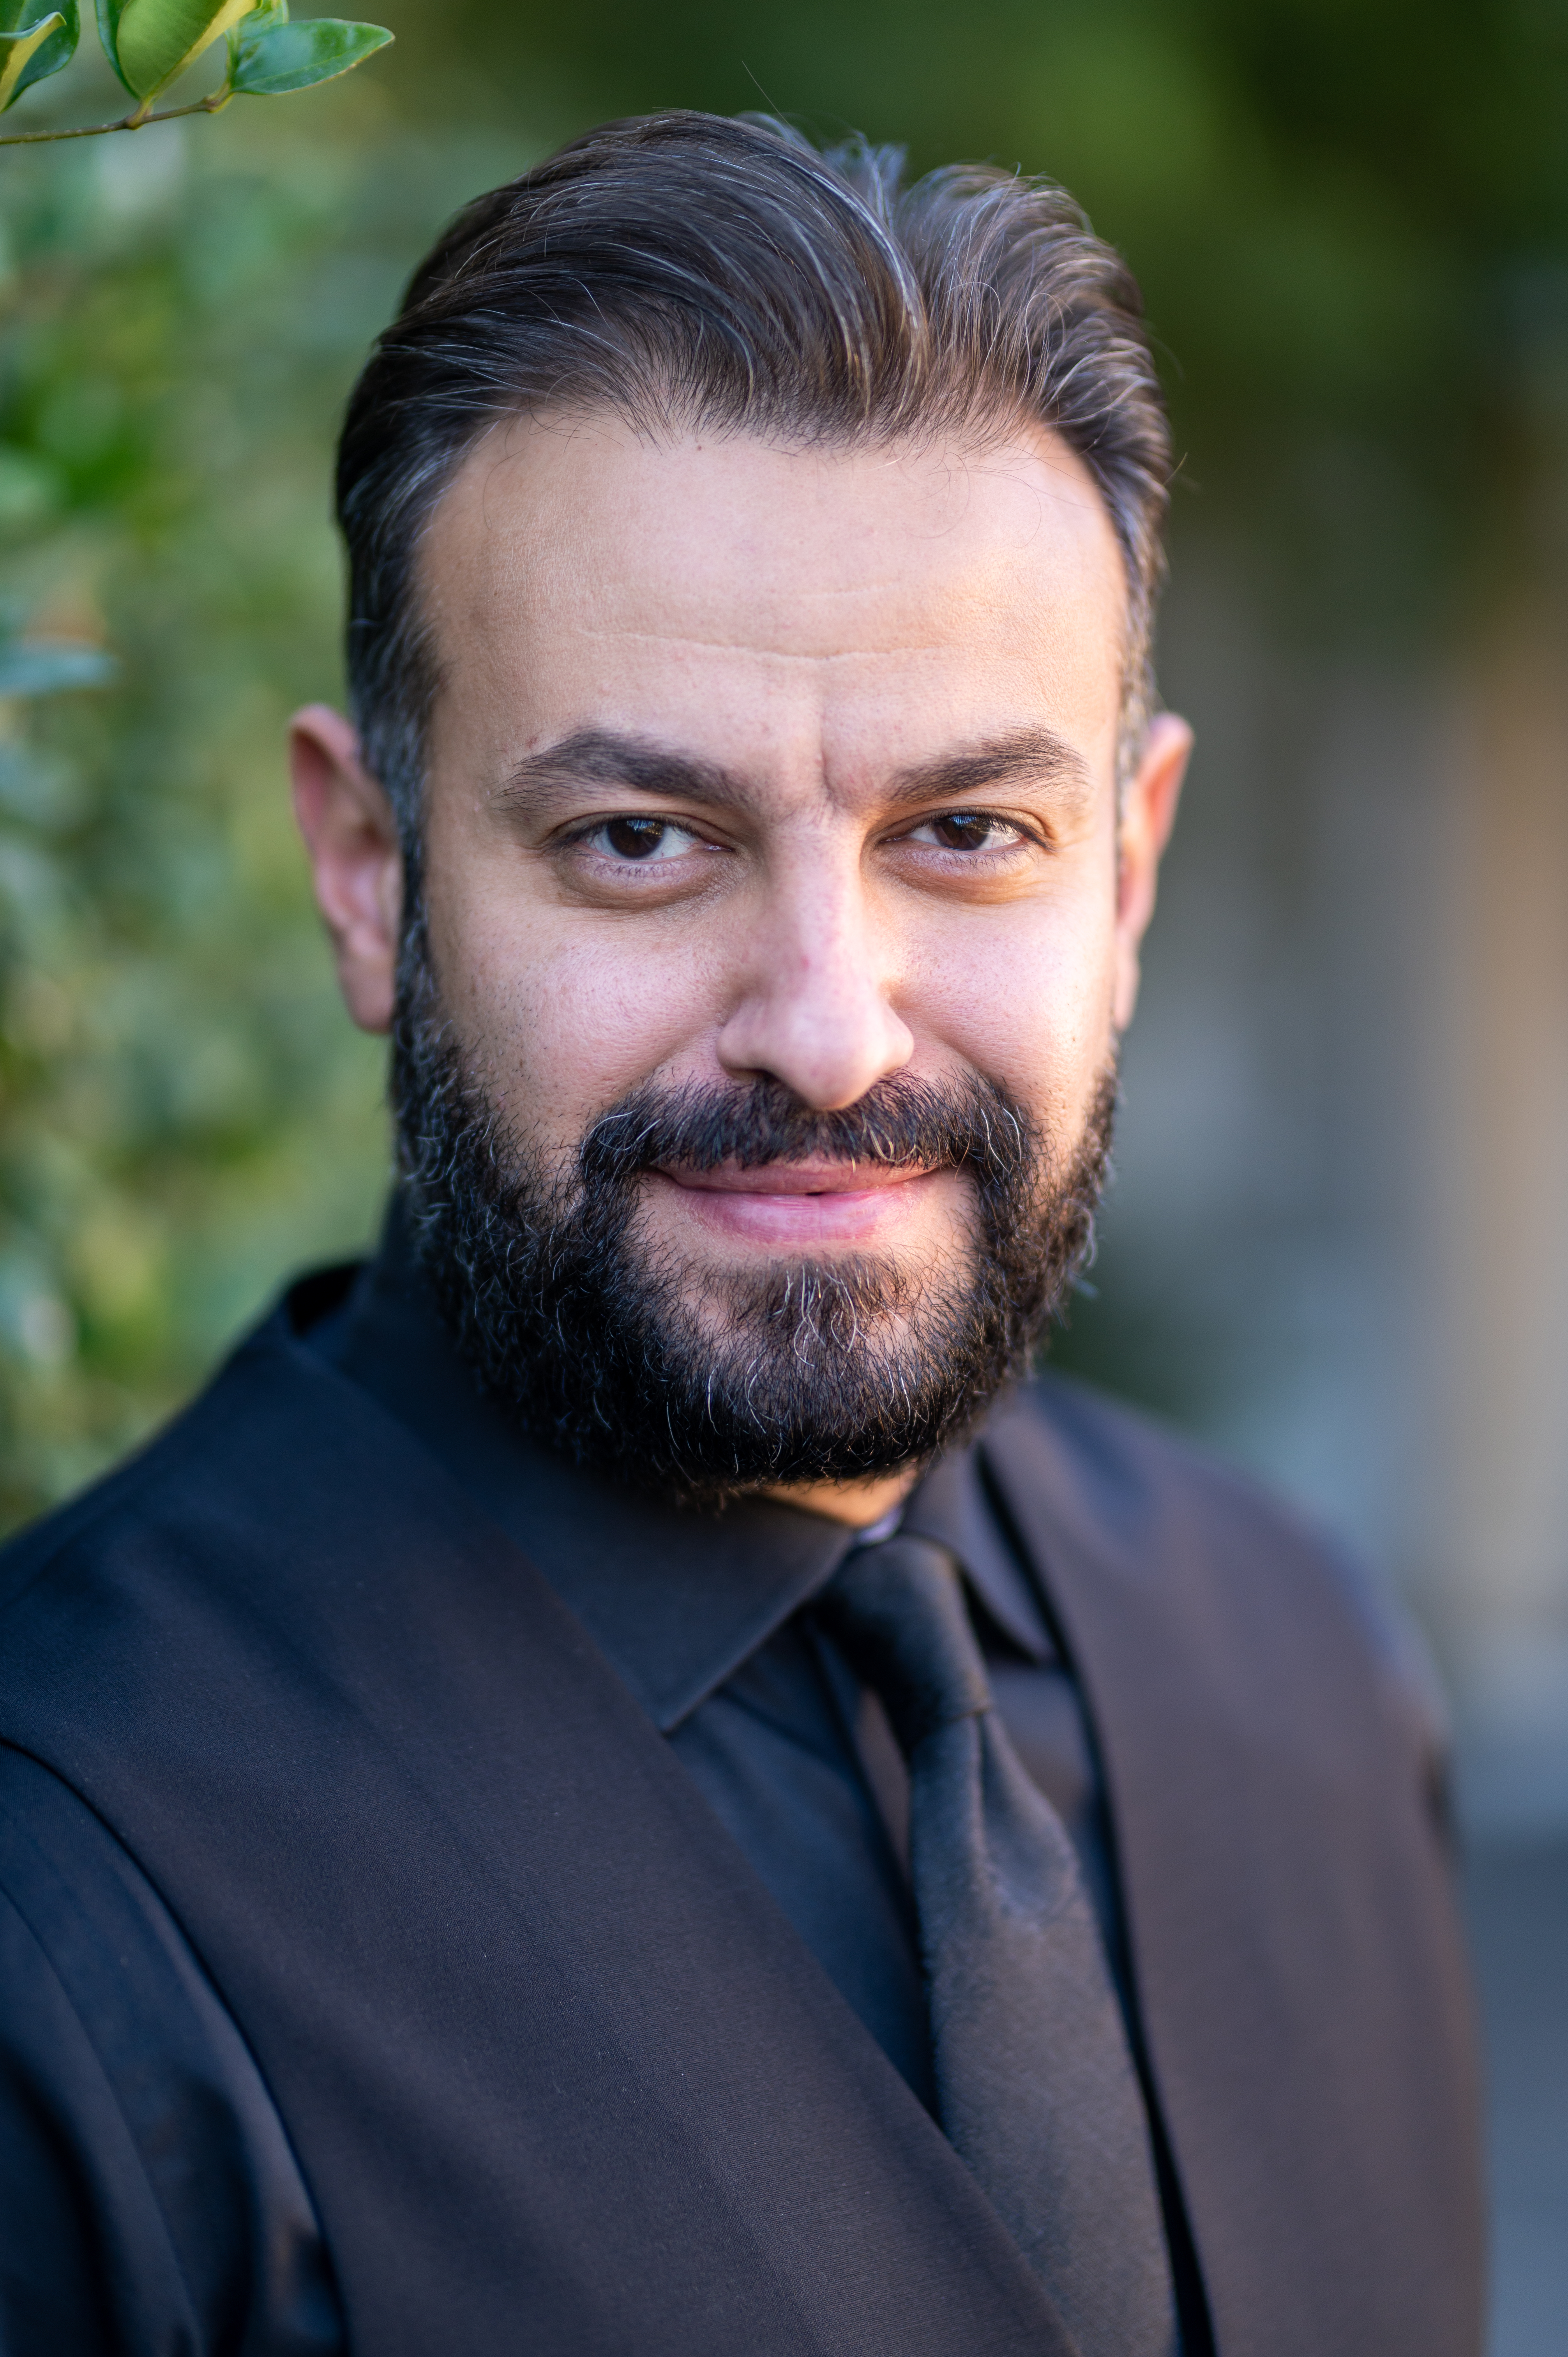 Chapel of the Flowers Staff - Mohammed